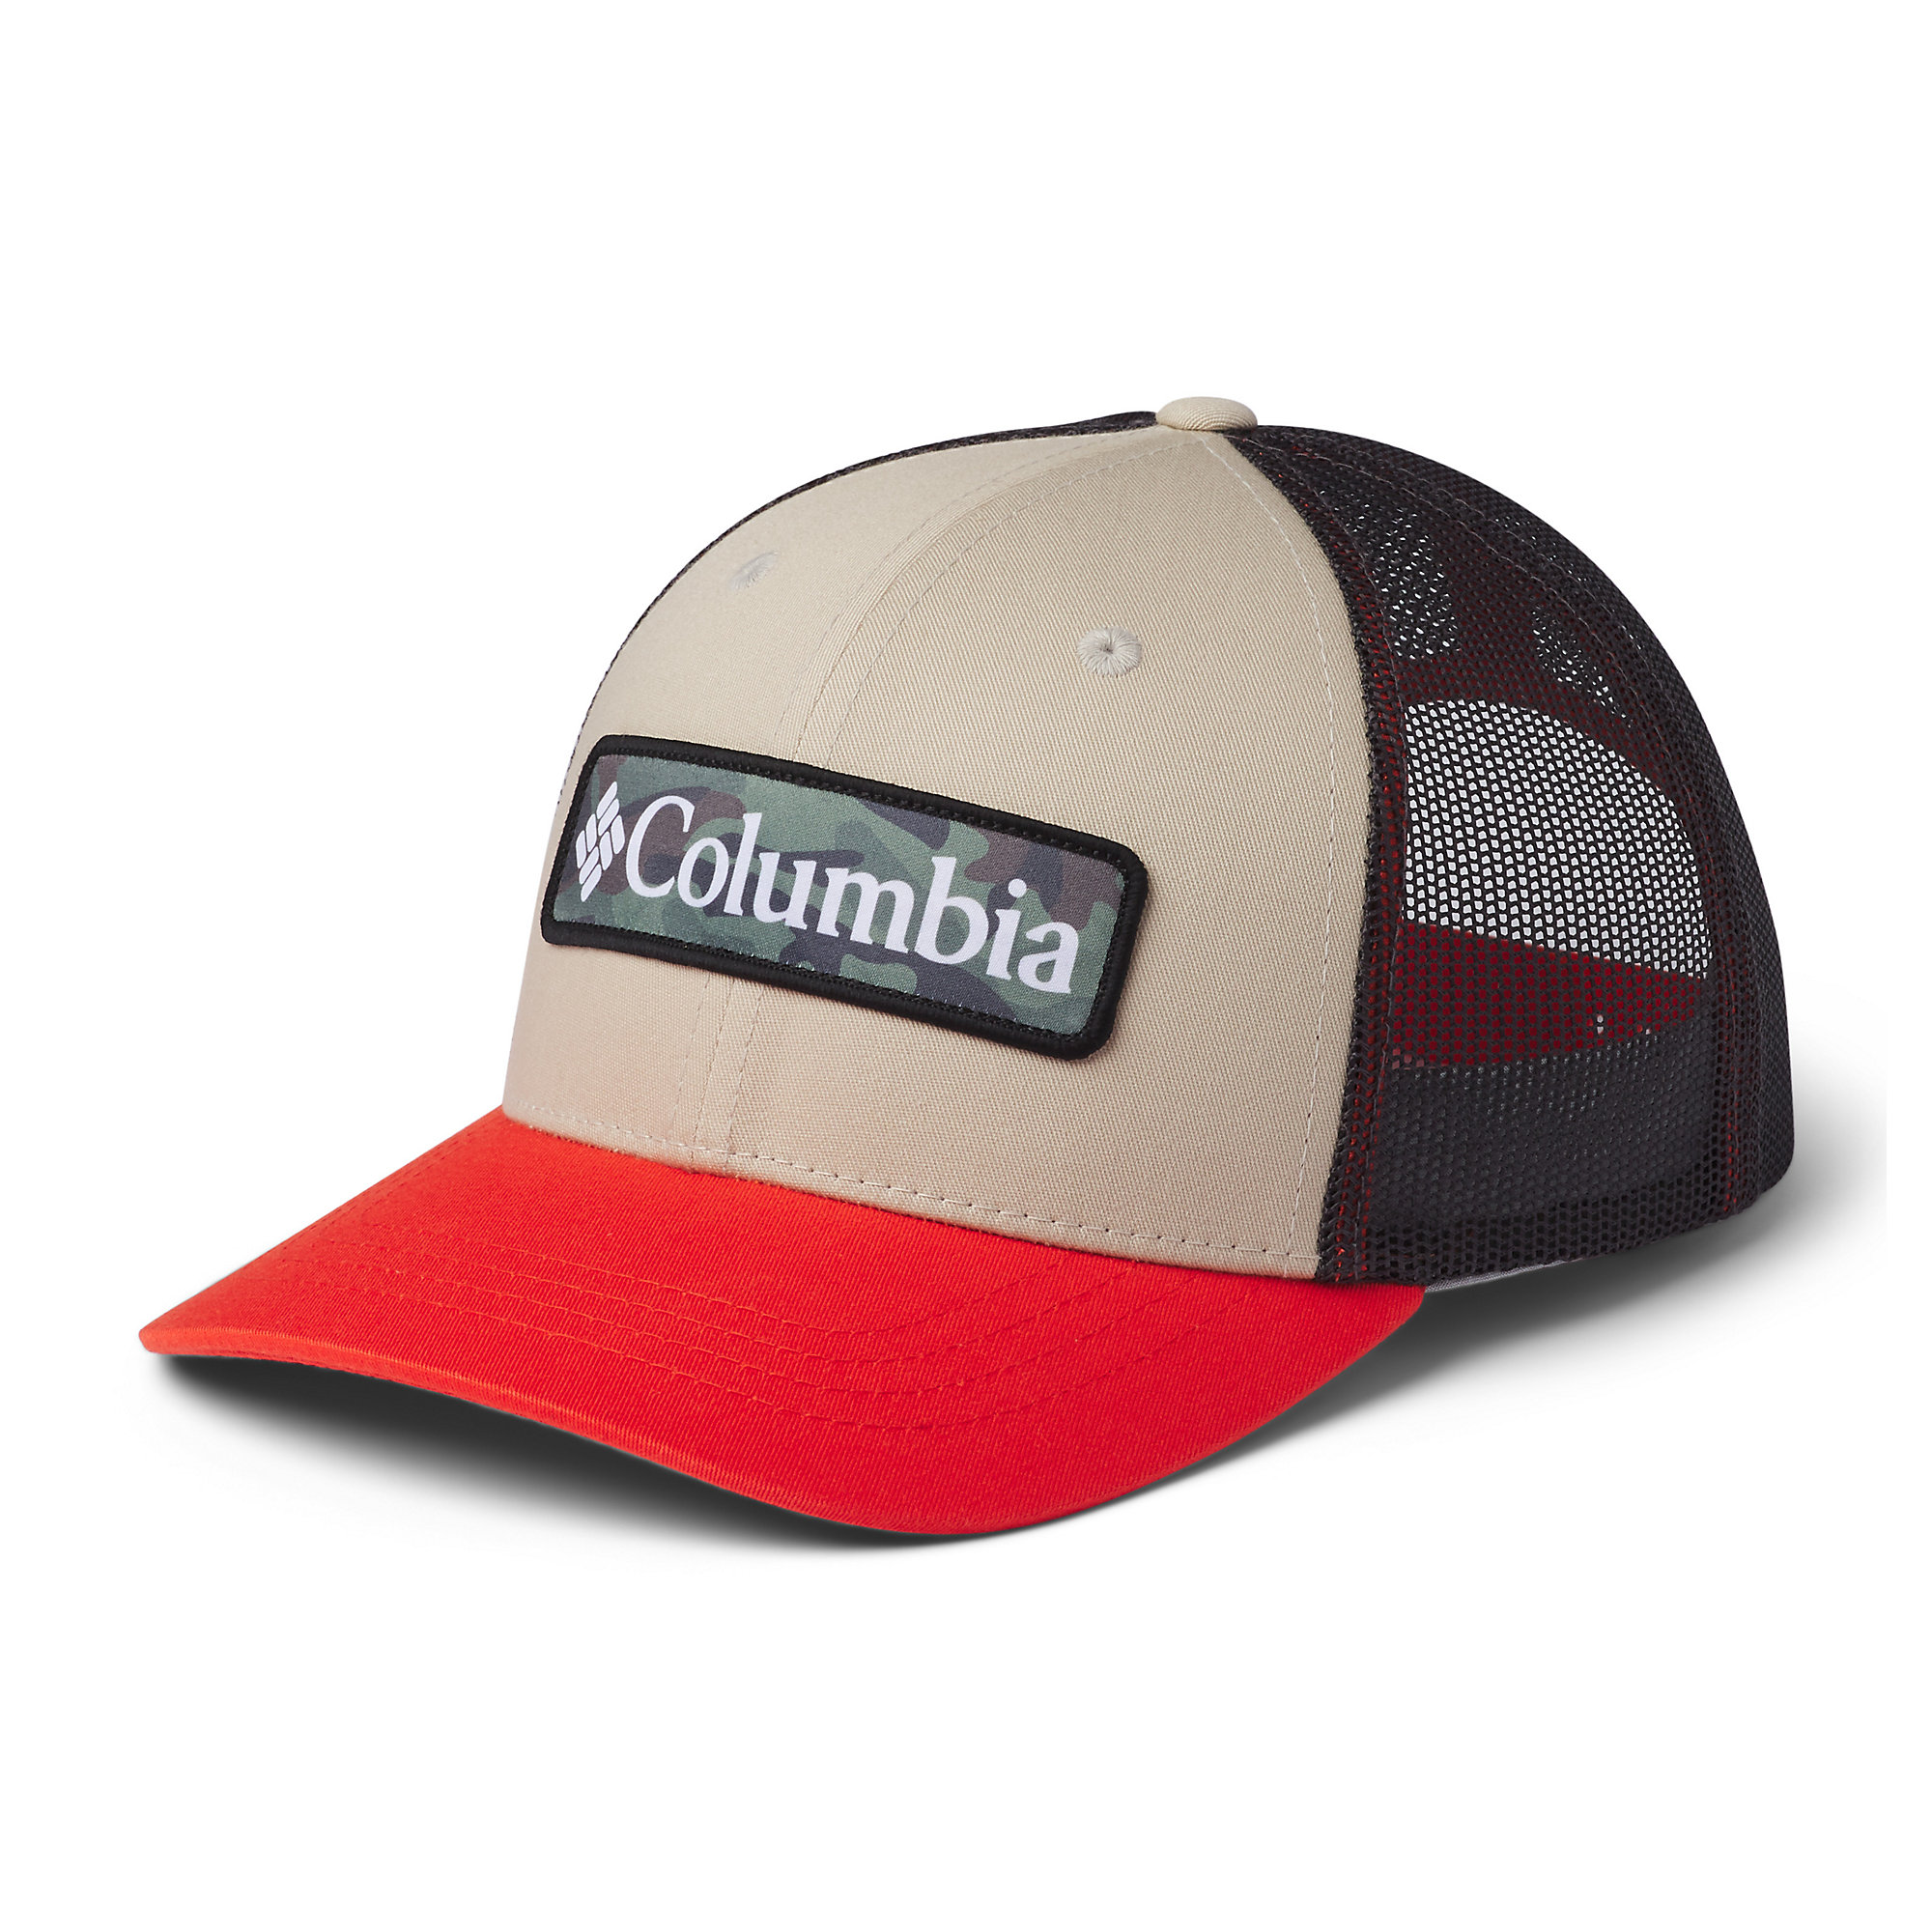 Columbia Columbia Youth Snap Back Hat 022 O/S- thumbnail